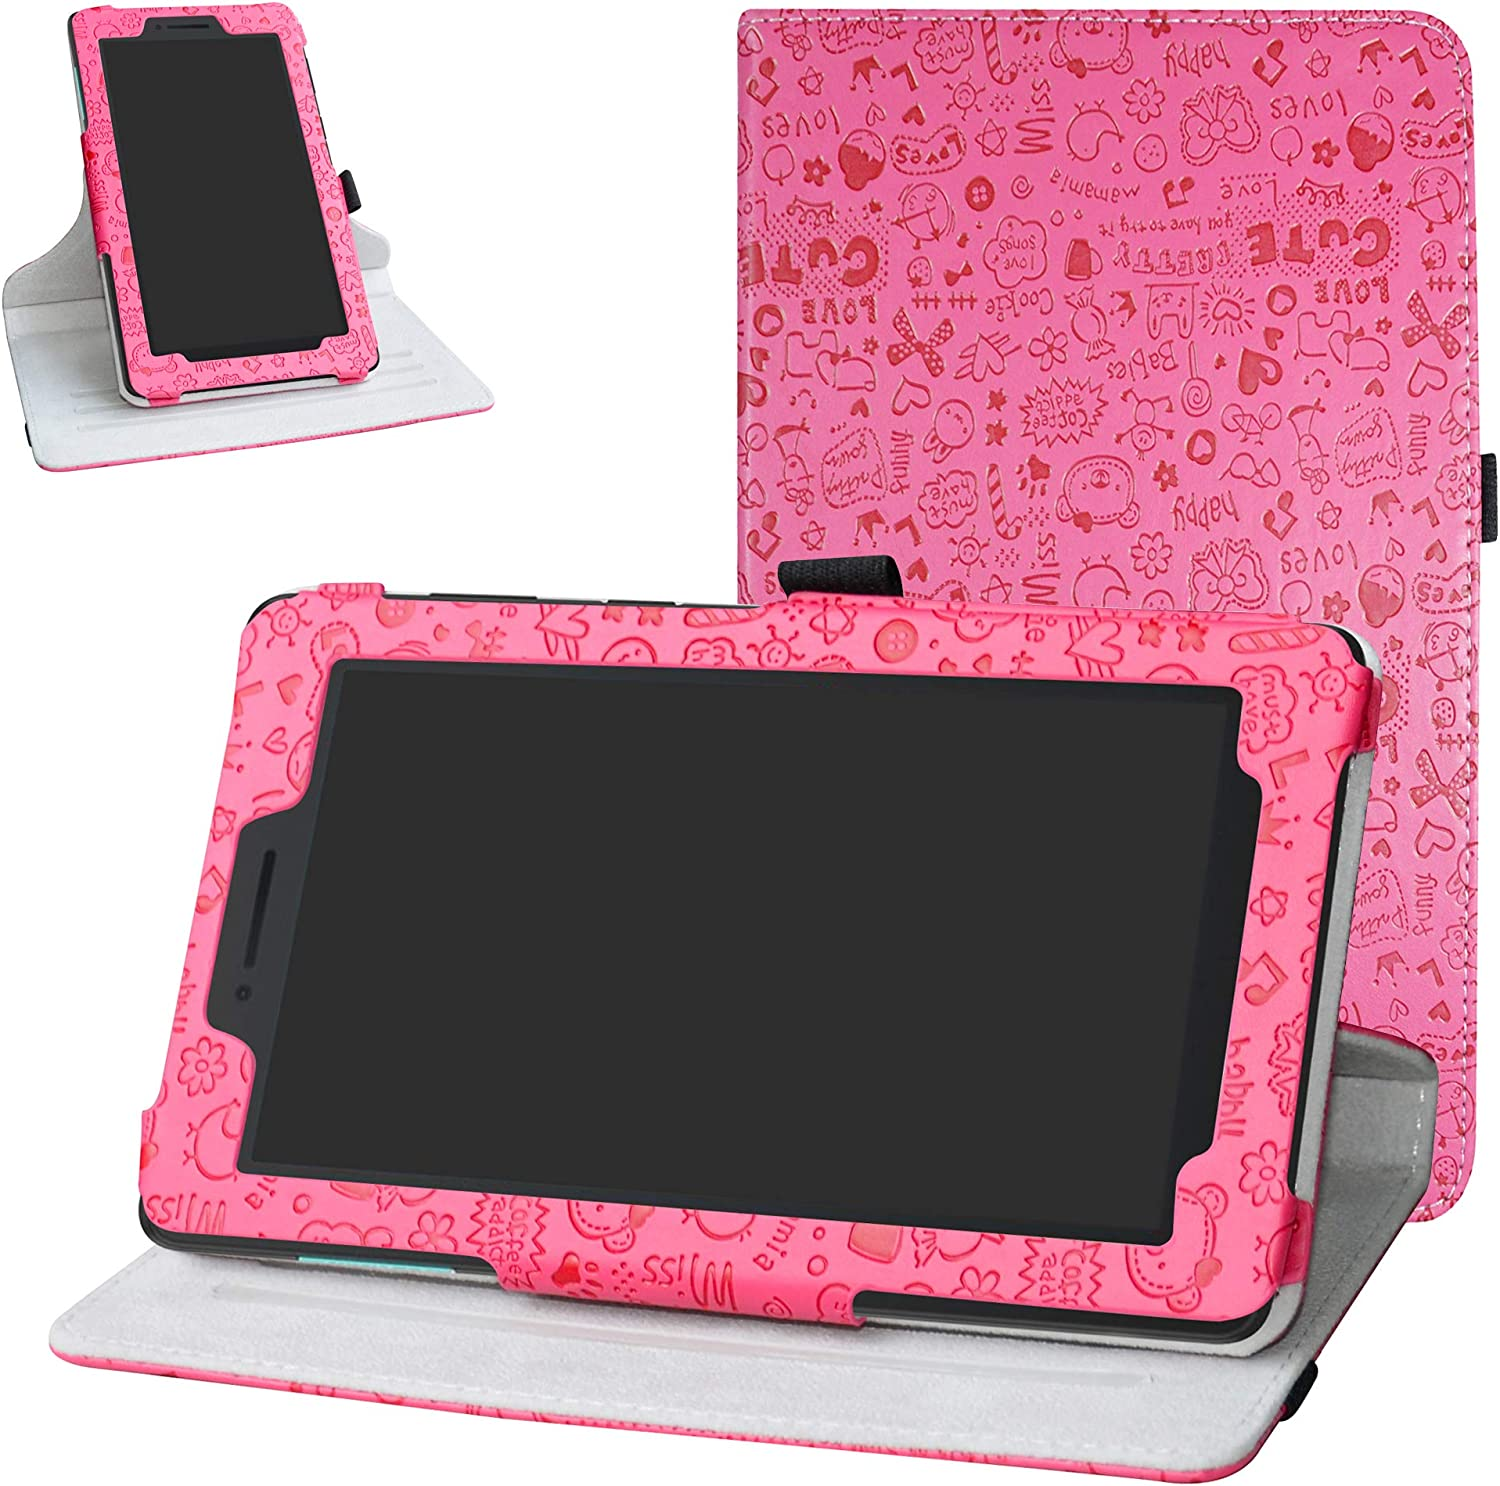 """Lenovo Tab E7 2018 Rotating Case,Bige 360 Degree Rotary Stand with Cute Pattern Cover for 7"""" Lenovo TAB E7 TB-7104F Tablet(2018),Rose Red"""